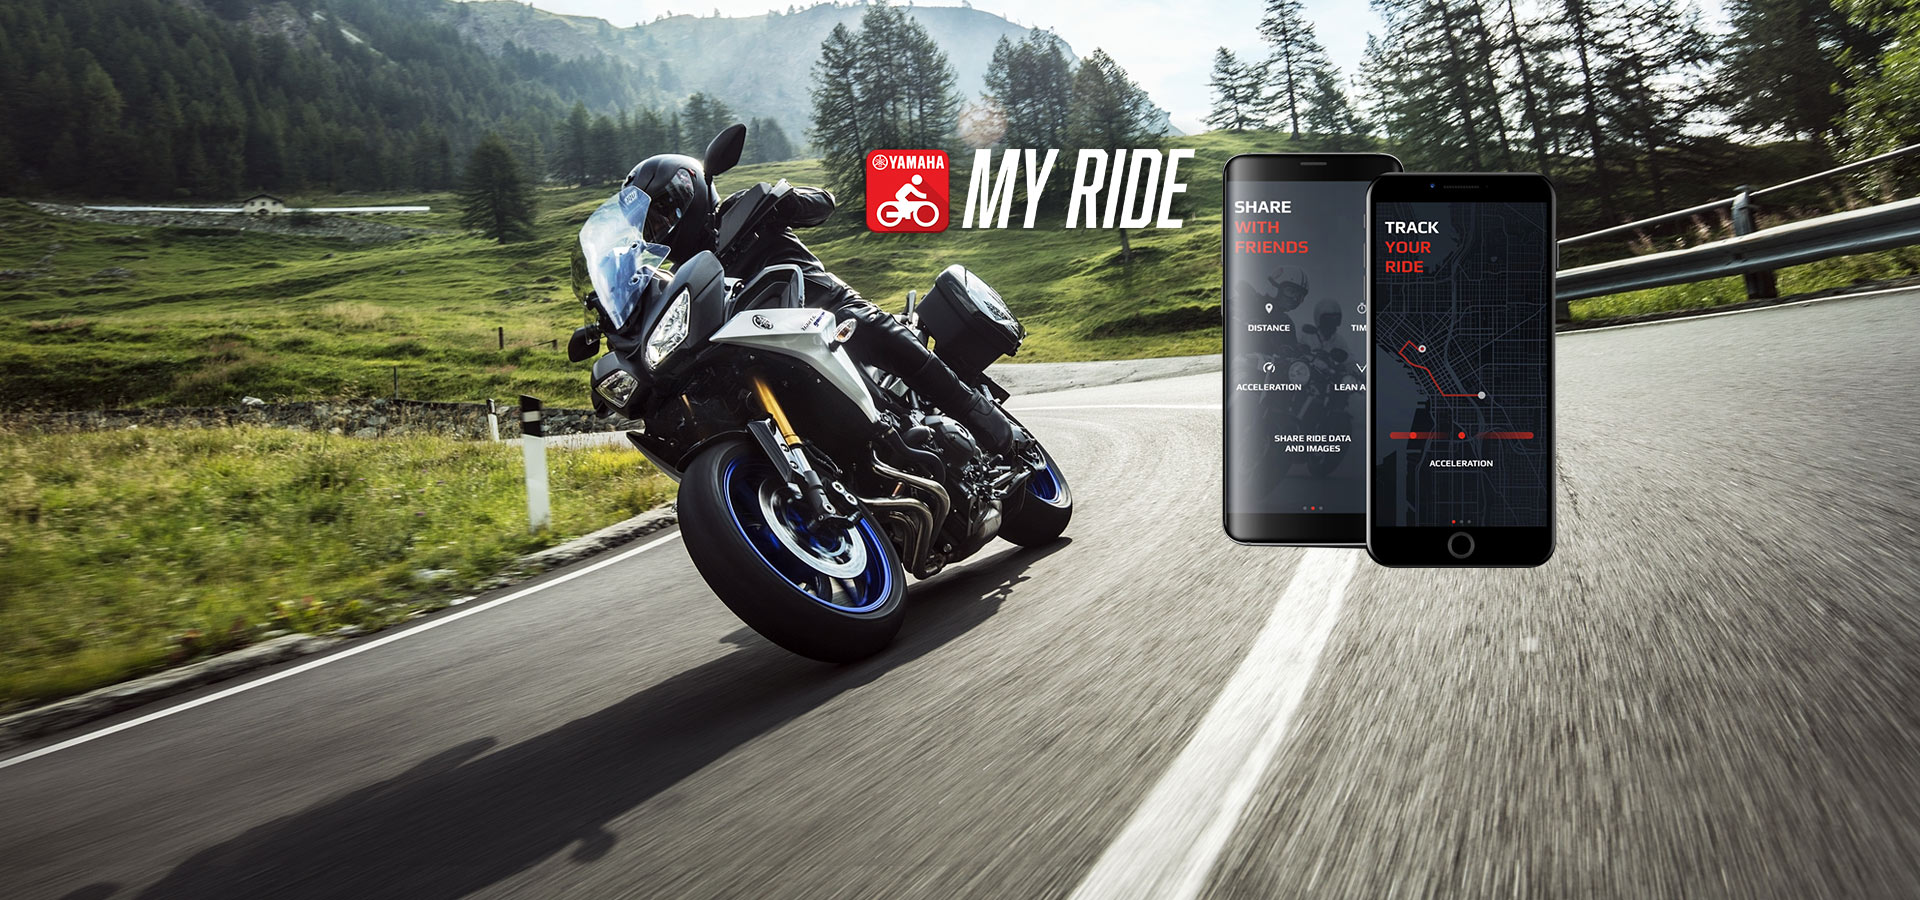 Yamaha launches the MyRide app